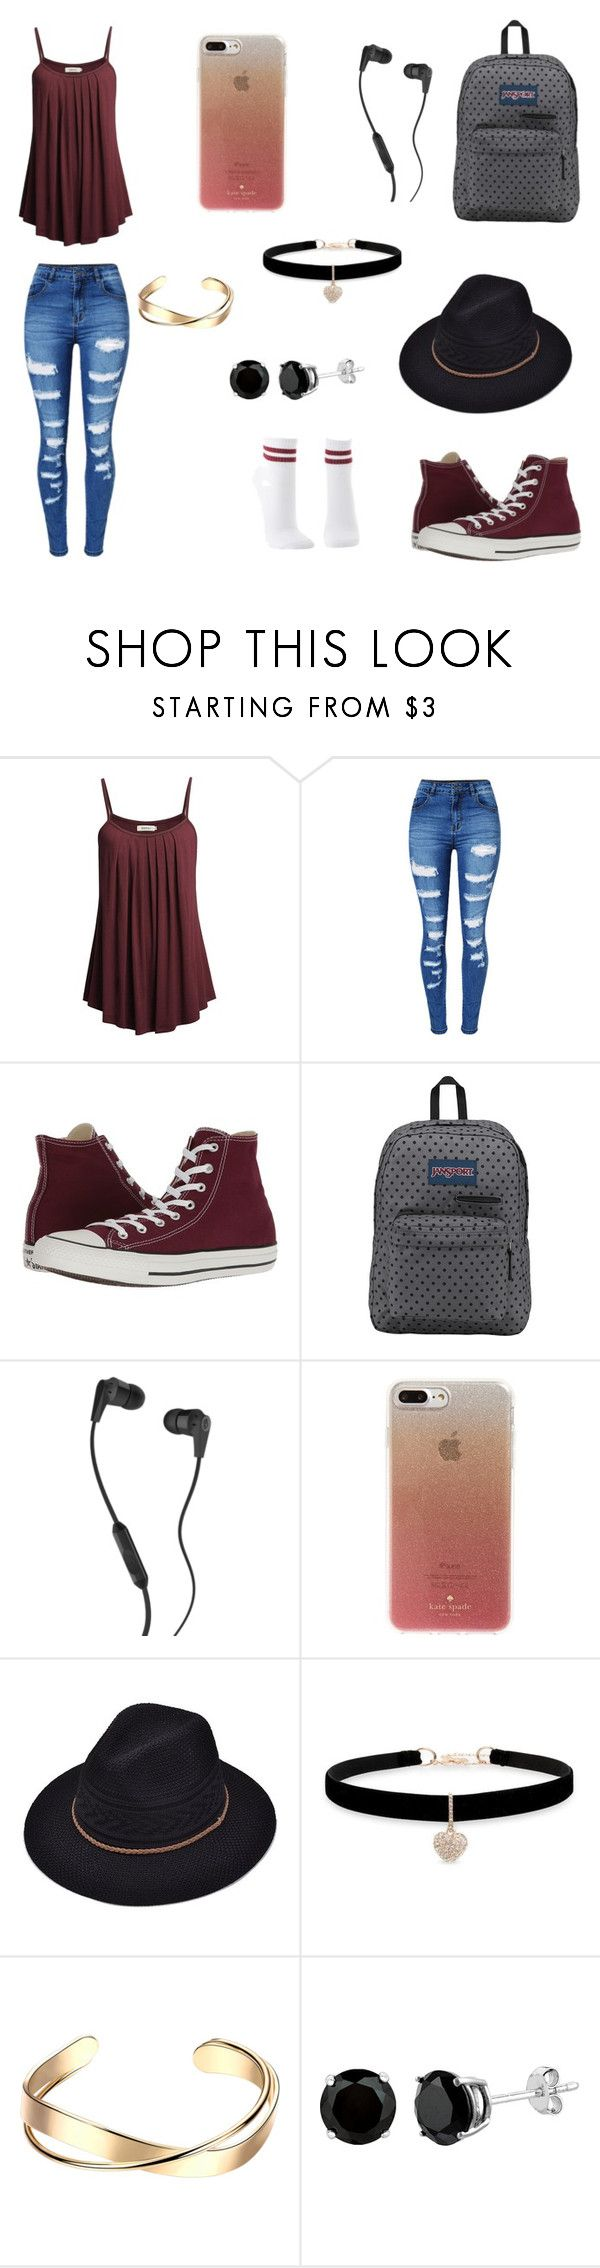 """""""Cheap Summer Style"""" by silliavinete8 on Polyvore featuring WithChic, Converse, JanSport, Skullcandy, Kate Spade, Betsey Johnson, Charlotte Russe, Summer, cute and casual"""